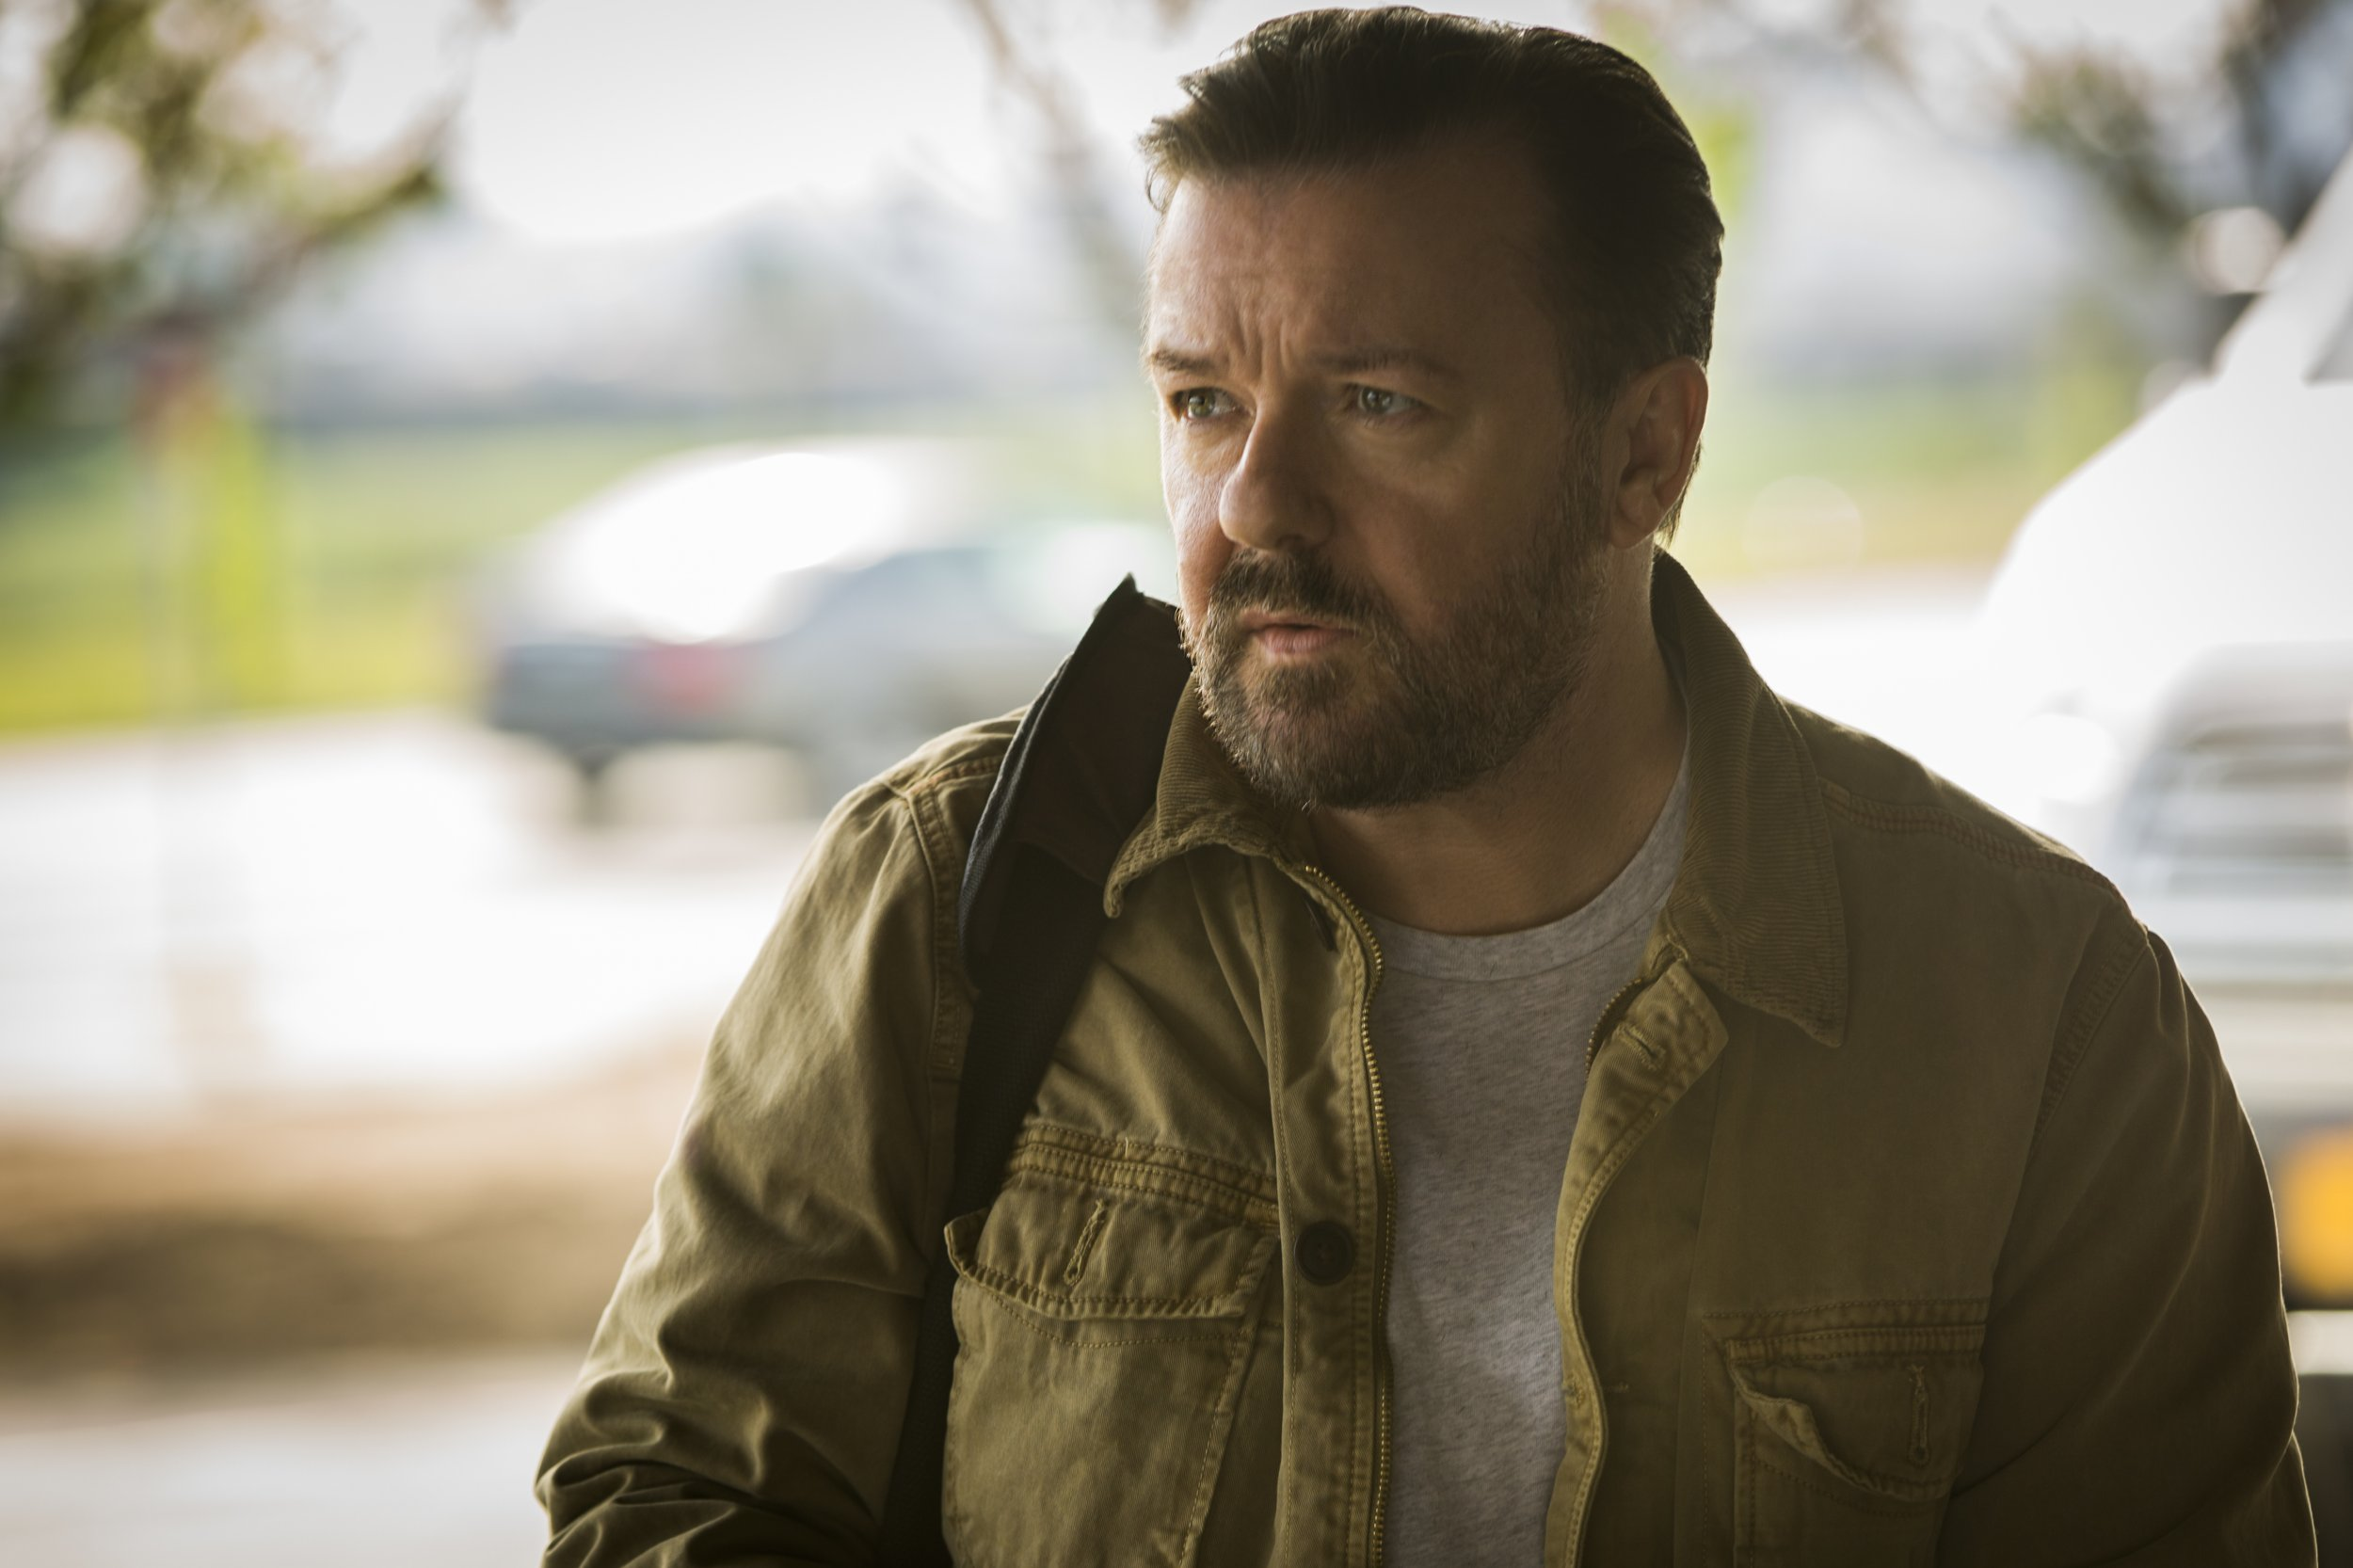 4-25-16 Ricky Gervais Special Correspondents